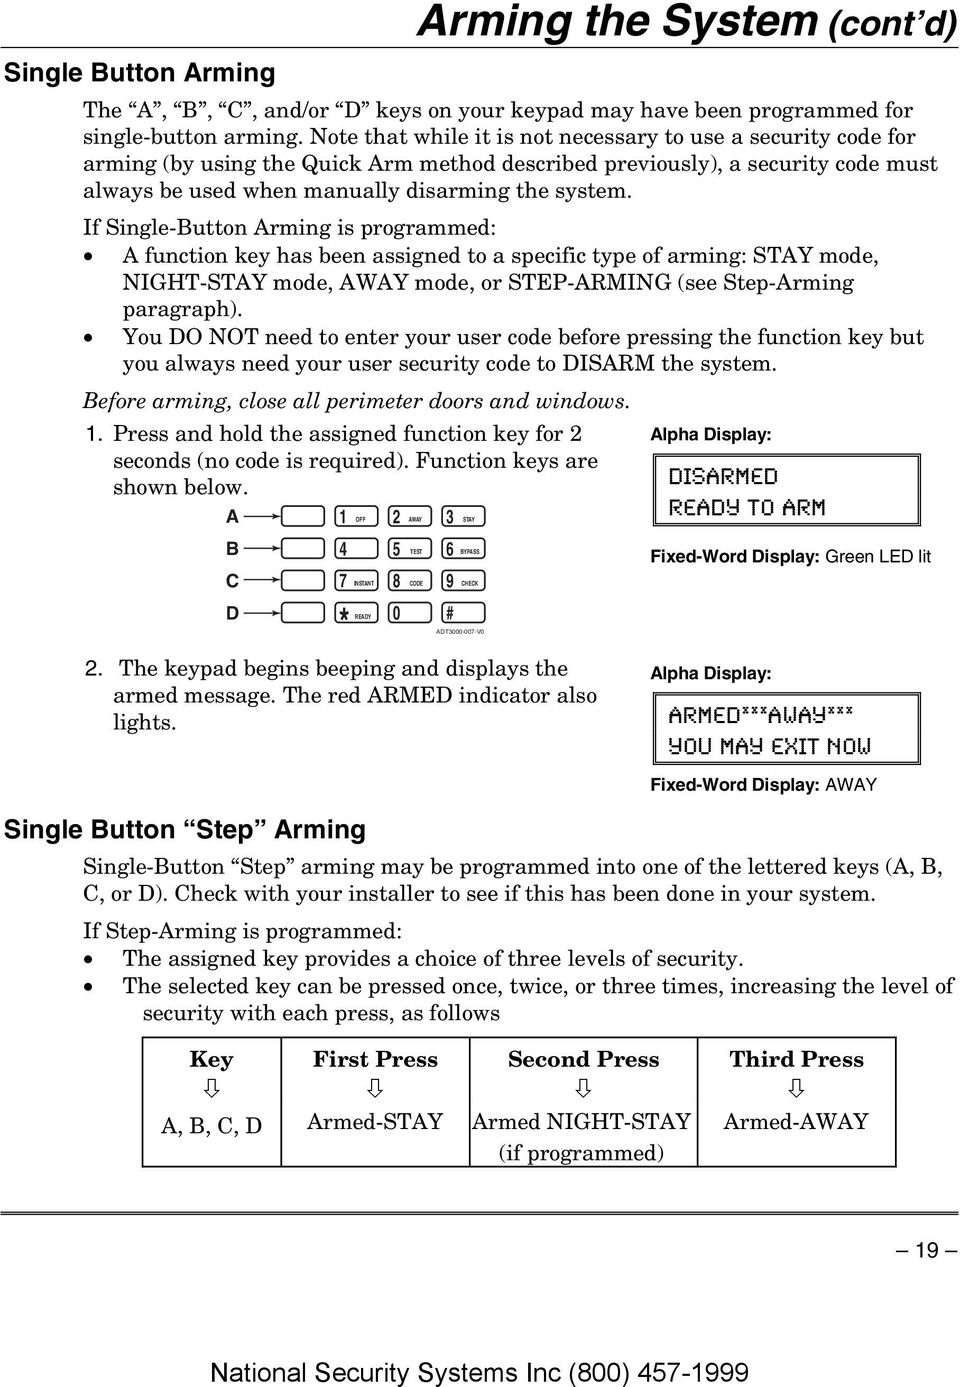 If Single-Button Arming is programmed: A function key has been assigned to a specific type of arming: STAY mode, NIGHT-STAY mode, AWAY mode, or STEP-ARMING (see Step-Arming paragraph).